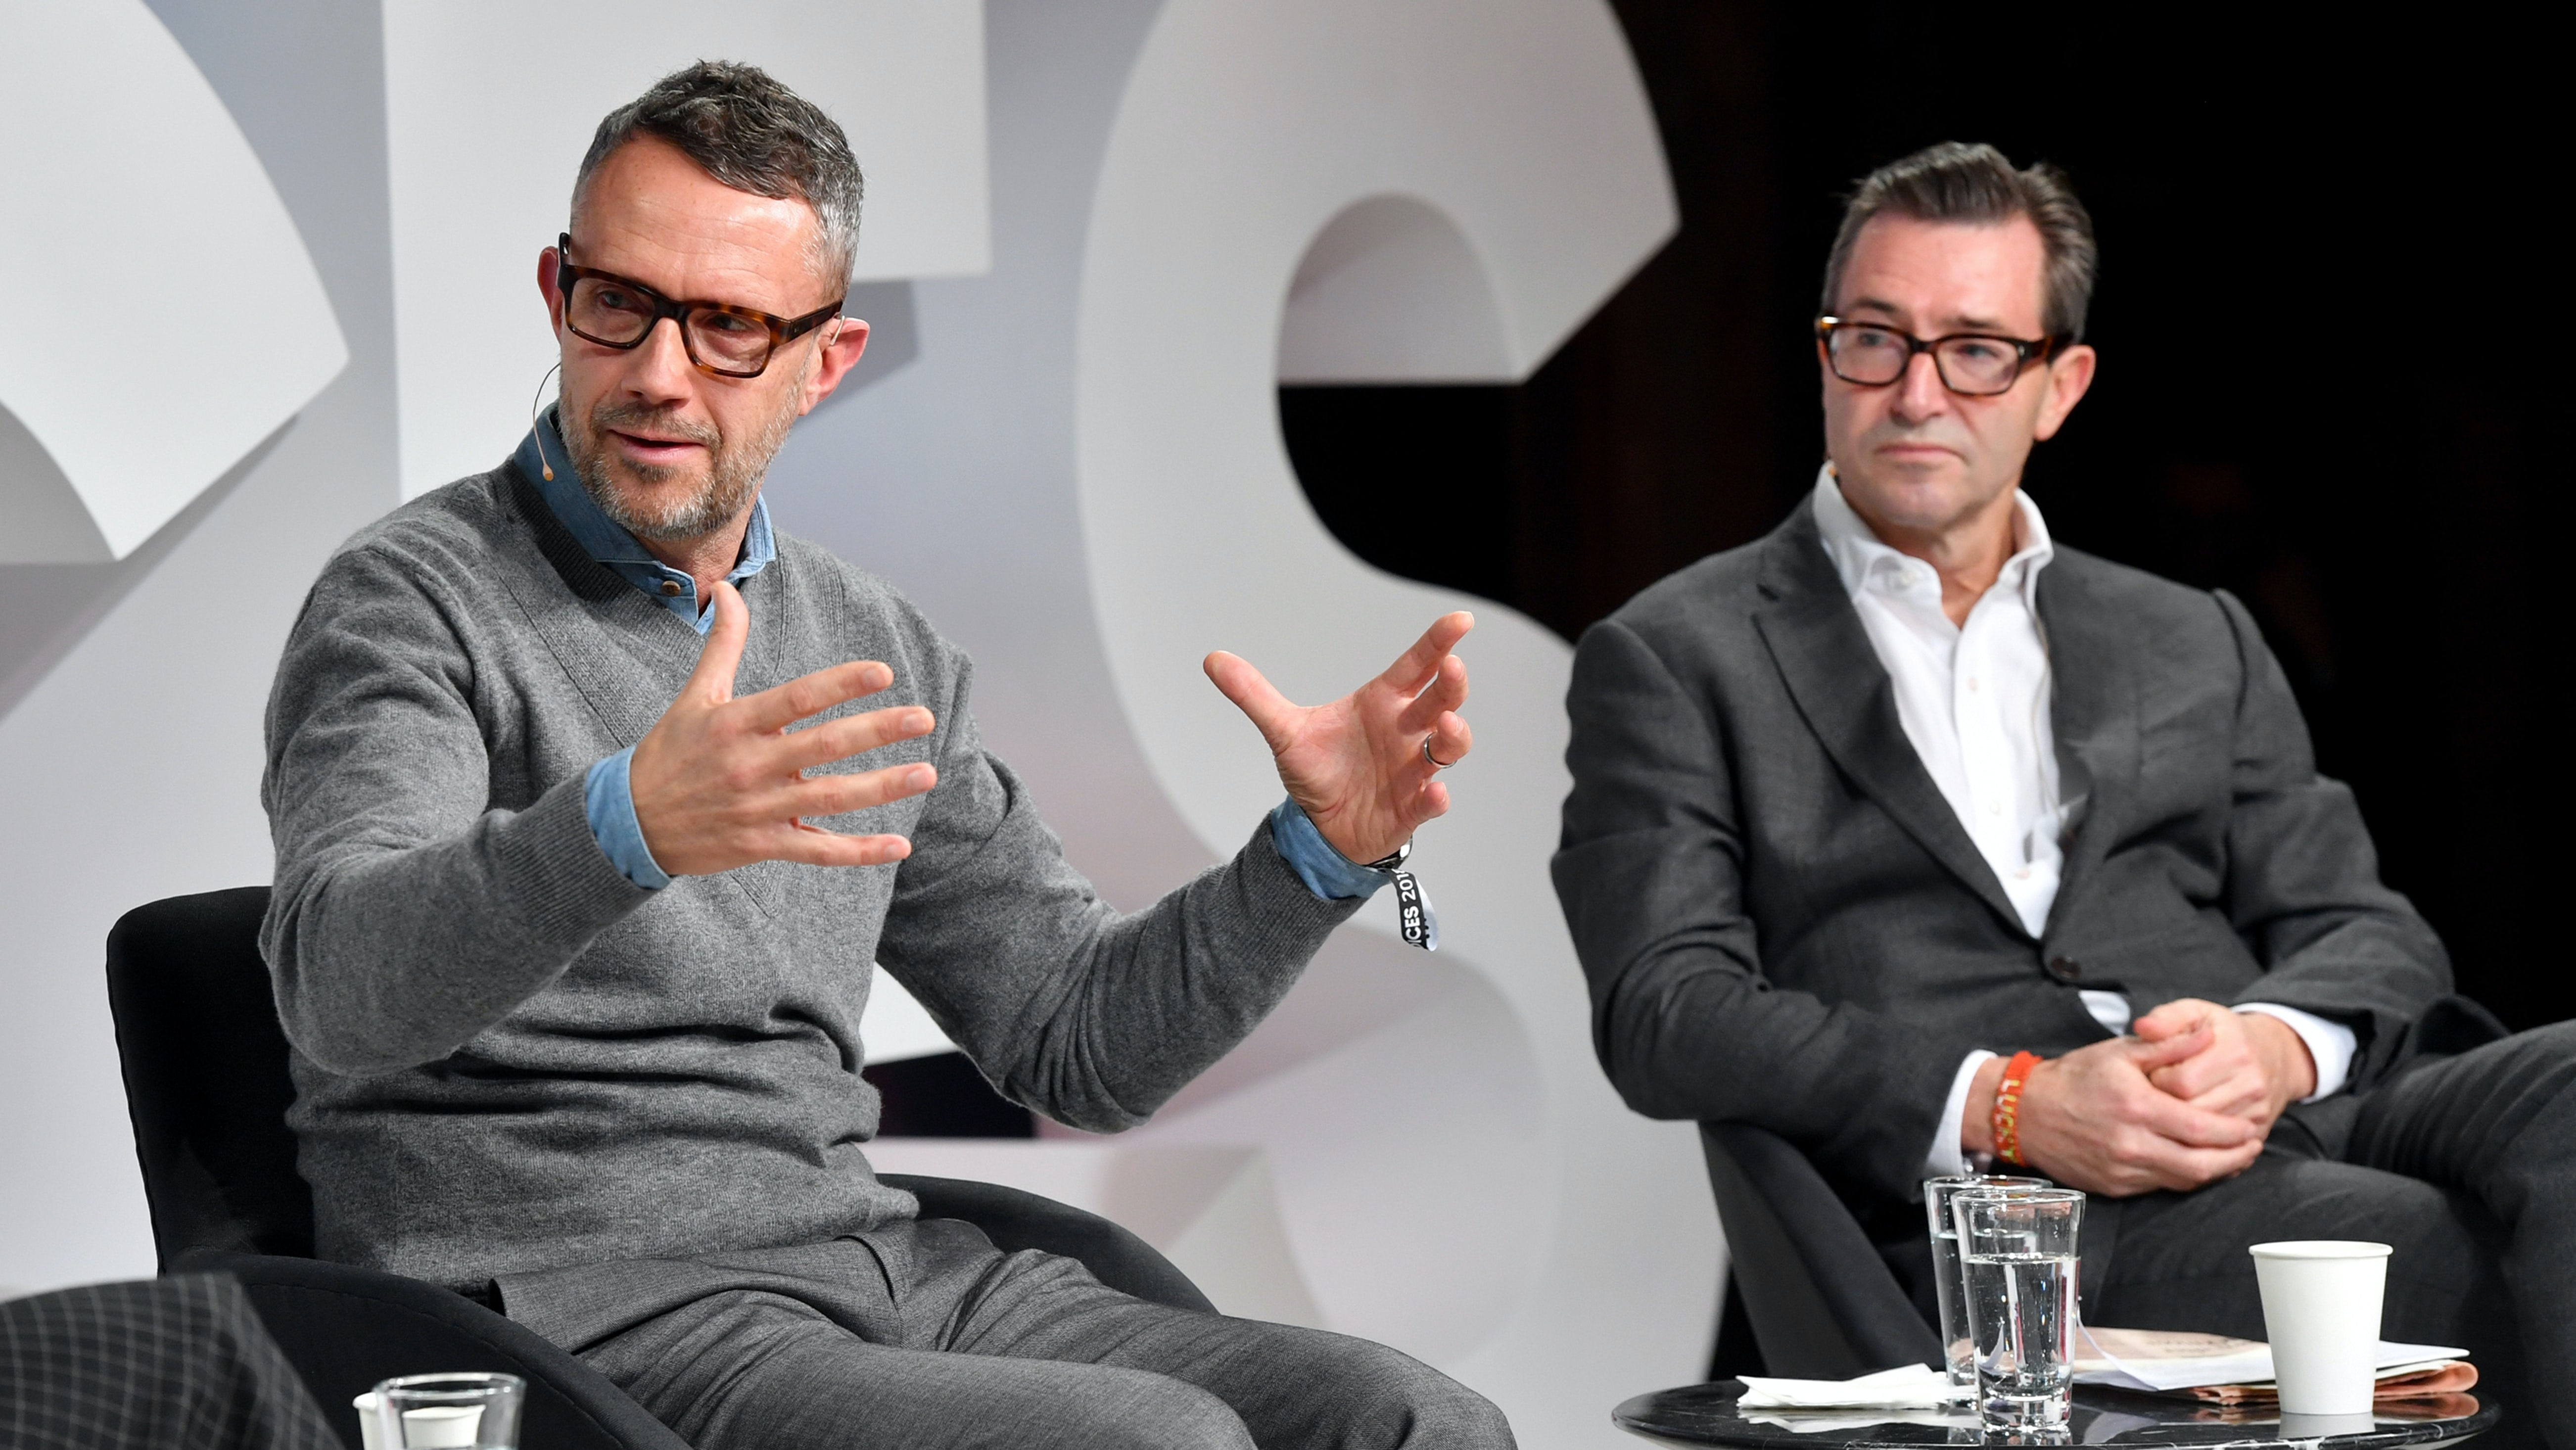 The BoF Podcast: John Ridding and David Pemsel on Reinventing Old Media for a New Media World